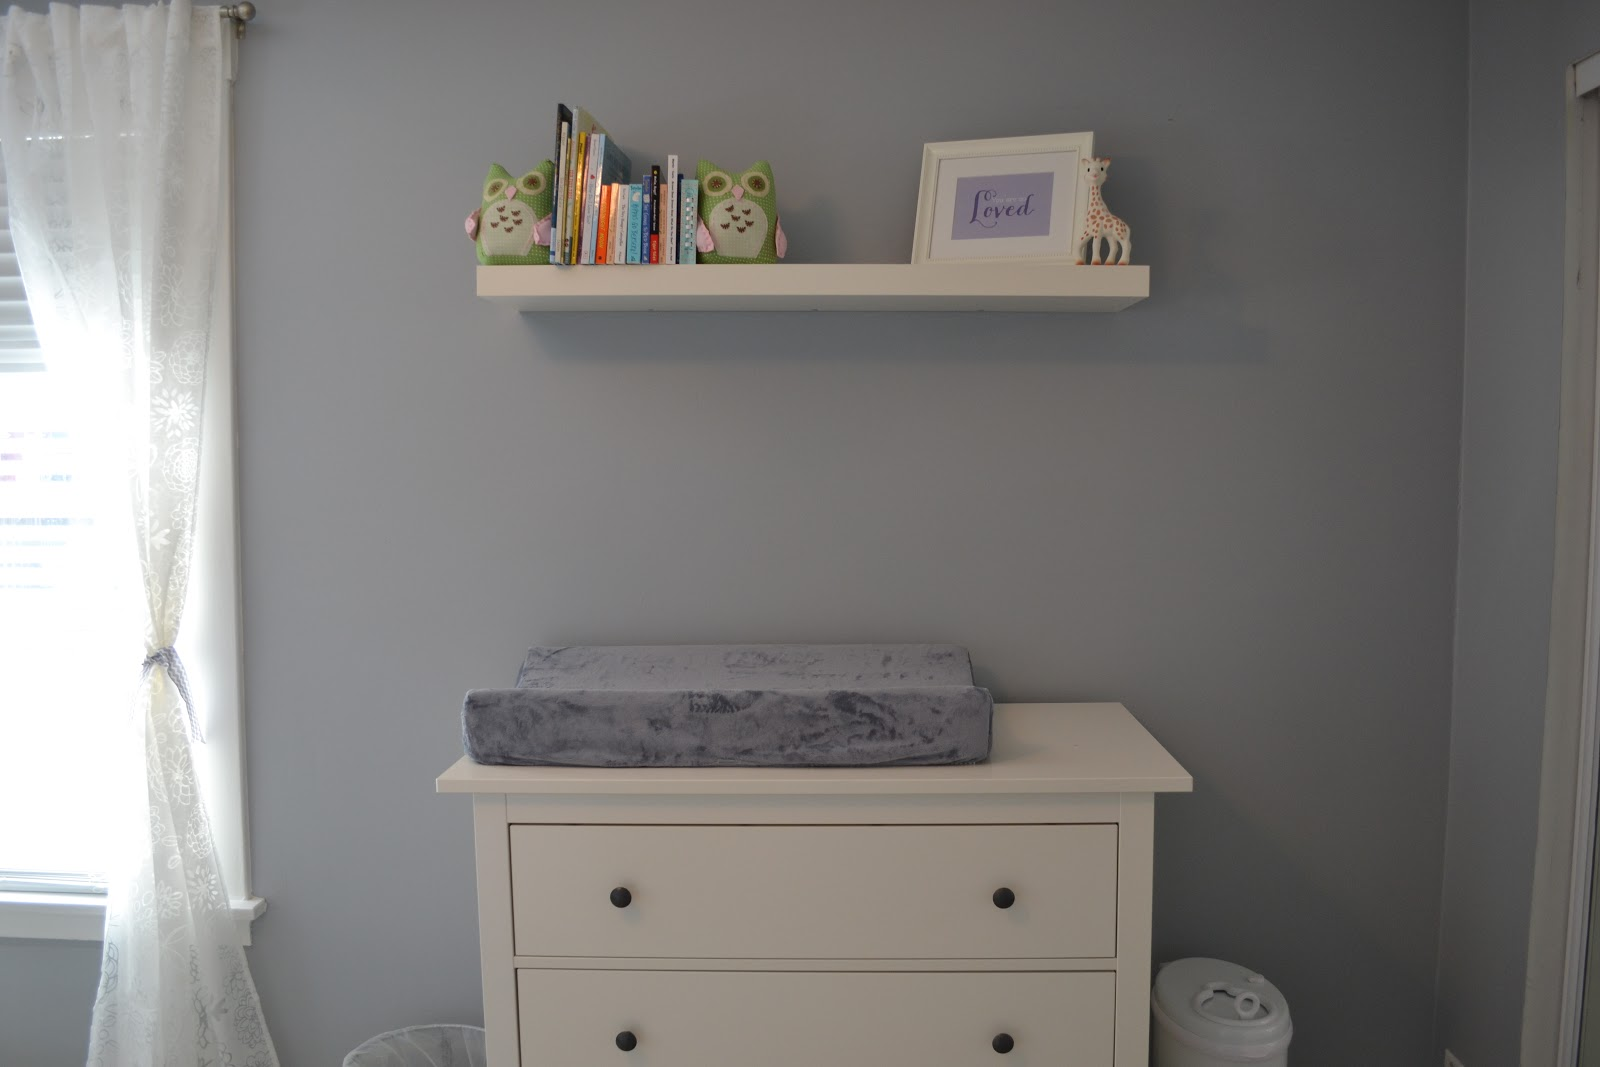 Our Delicious Life Baby Bookshelves - Baby bookshelves